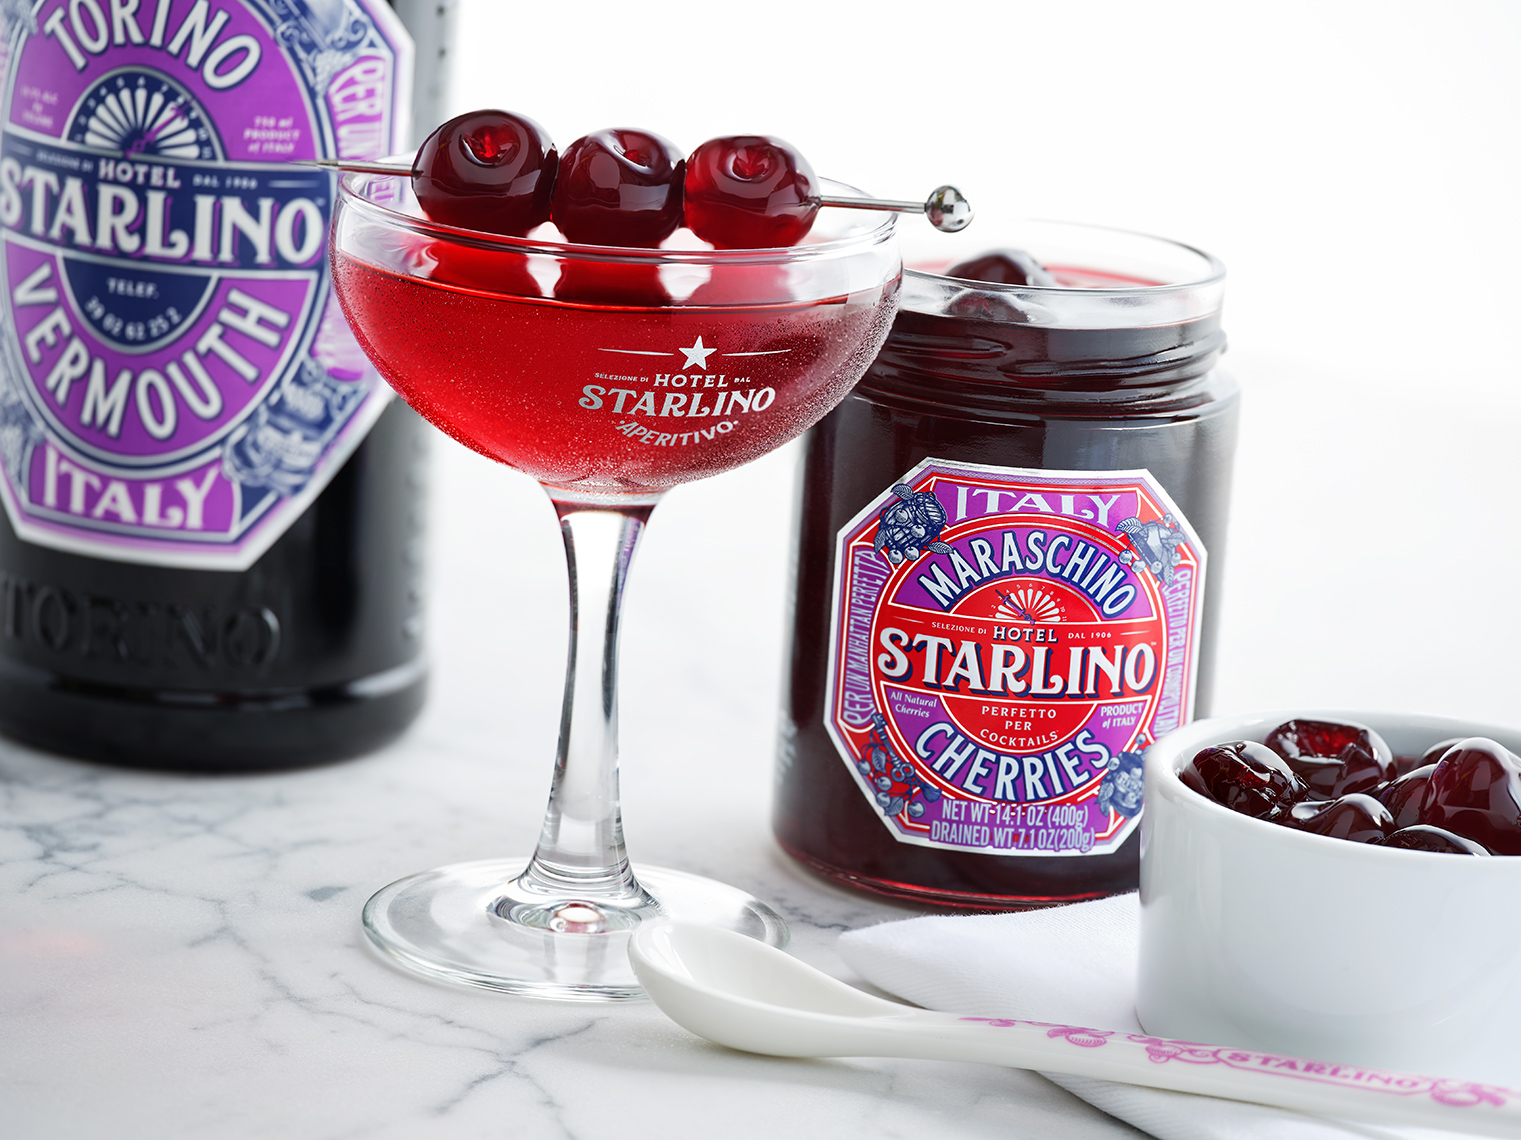 Red Productions Product & Still Life Photography Starlino Maraschino Cherries